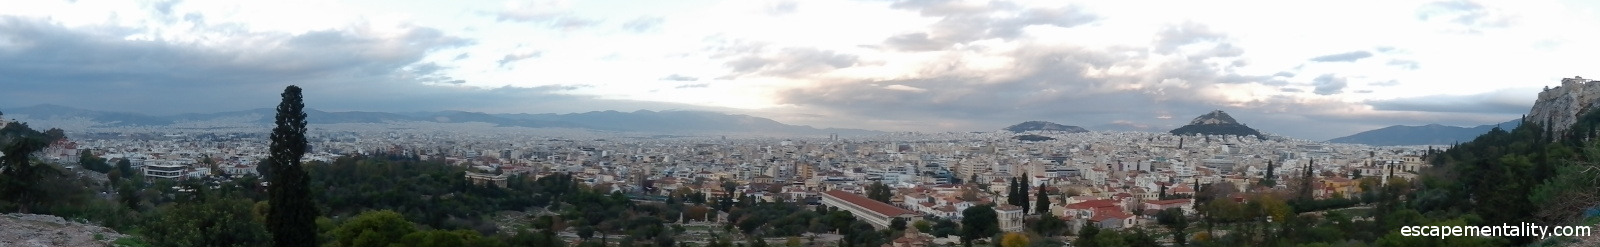 View of Athens from Areopagus hill